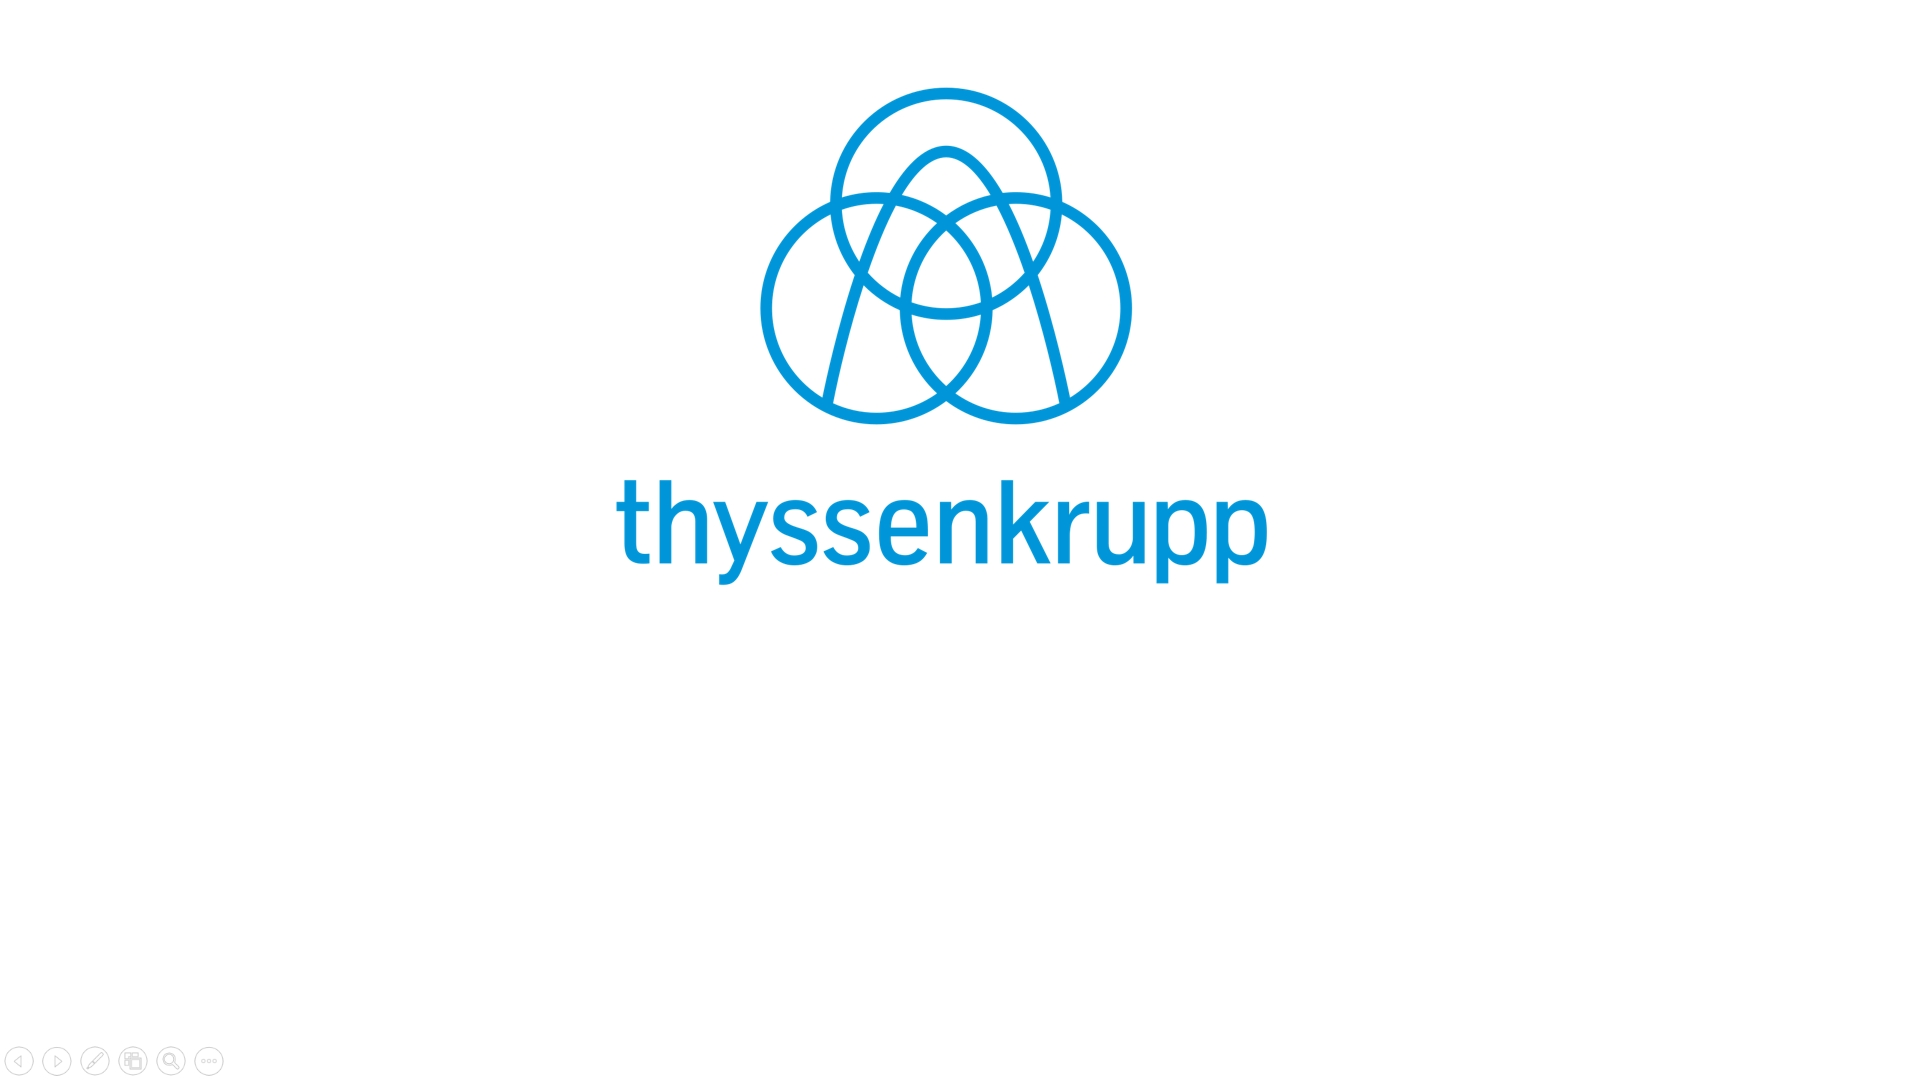 Thyssenkrupp is Building an Engineering Service Centre in Veszprém